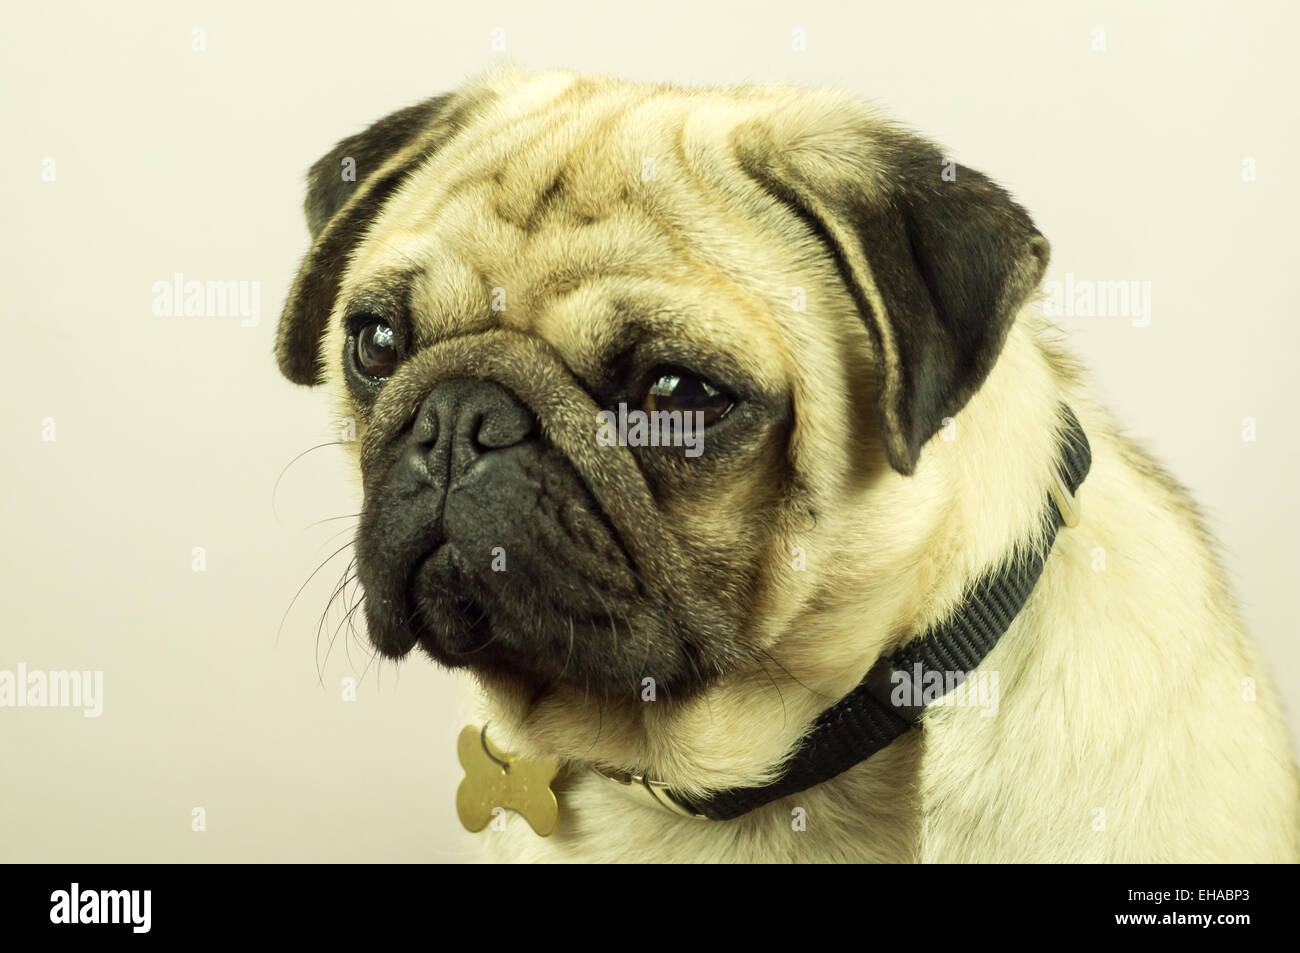 A close up photograph of a Pug dog - Stock Image